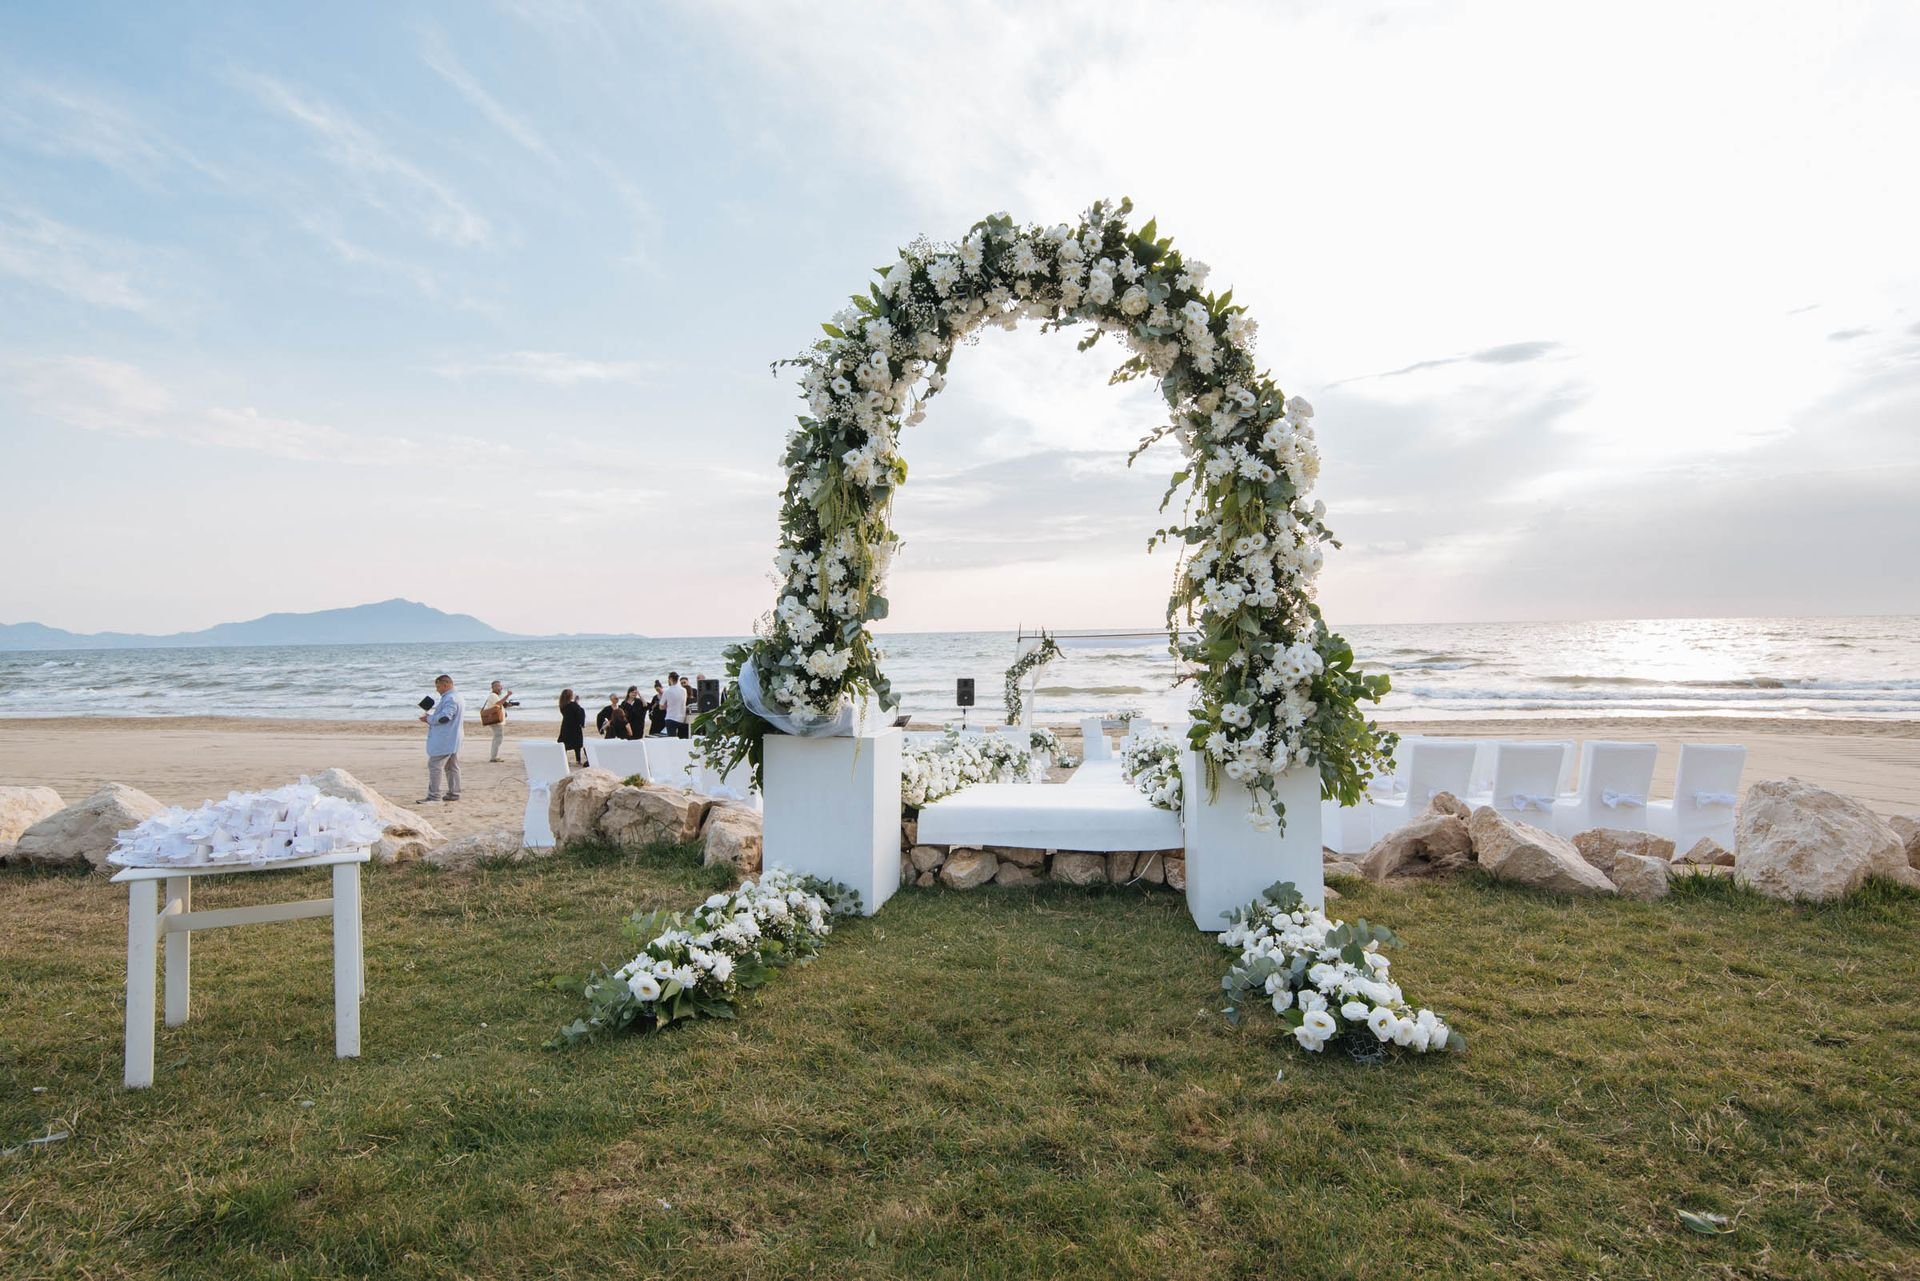 Key-wedding-location-matrimonio-spiaggia_risultato_125